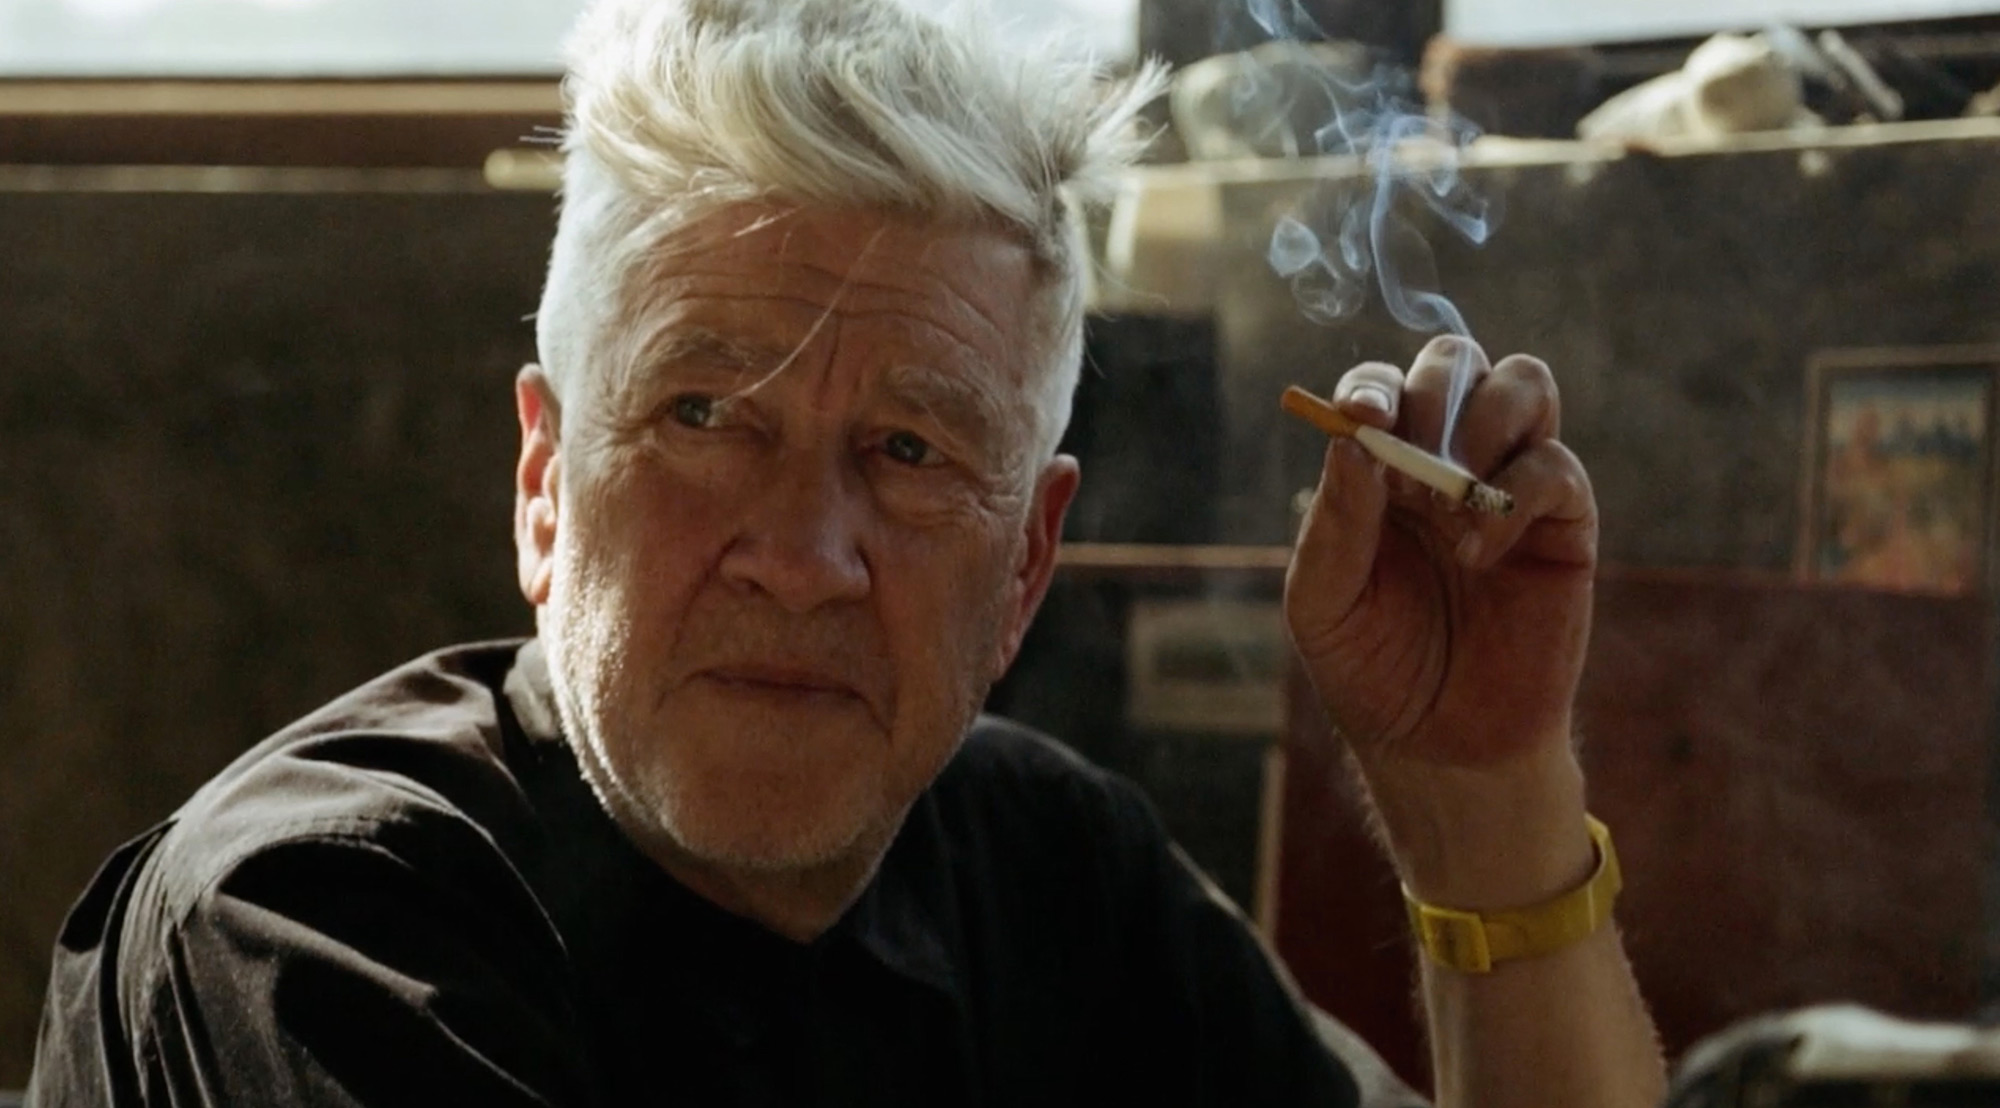 """David Lynch: The Art Life"" looks at the artistic process of the famed filmmaker."